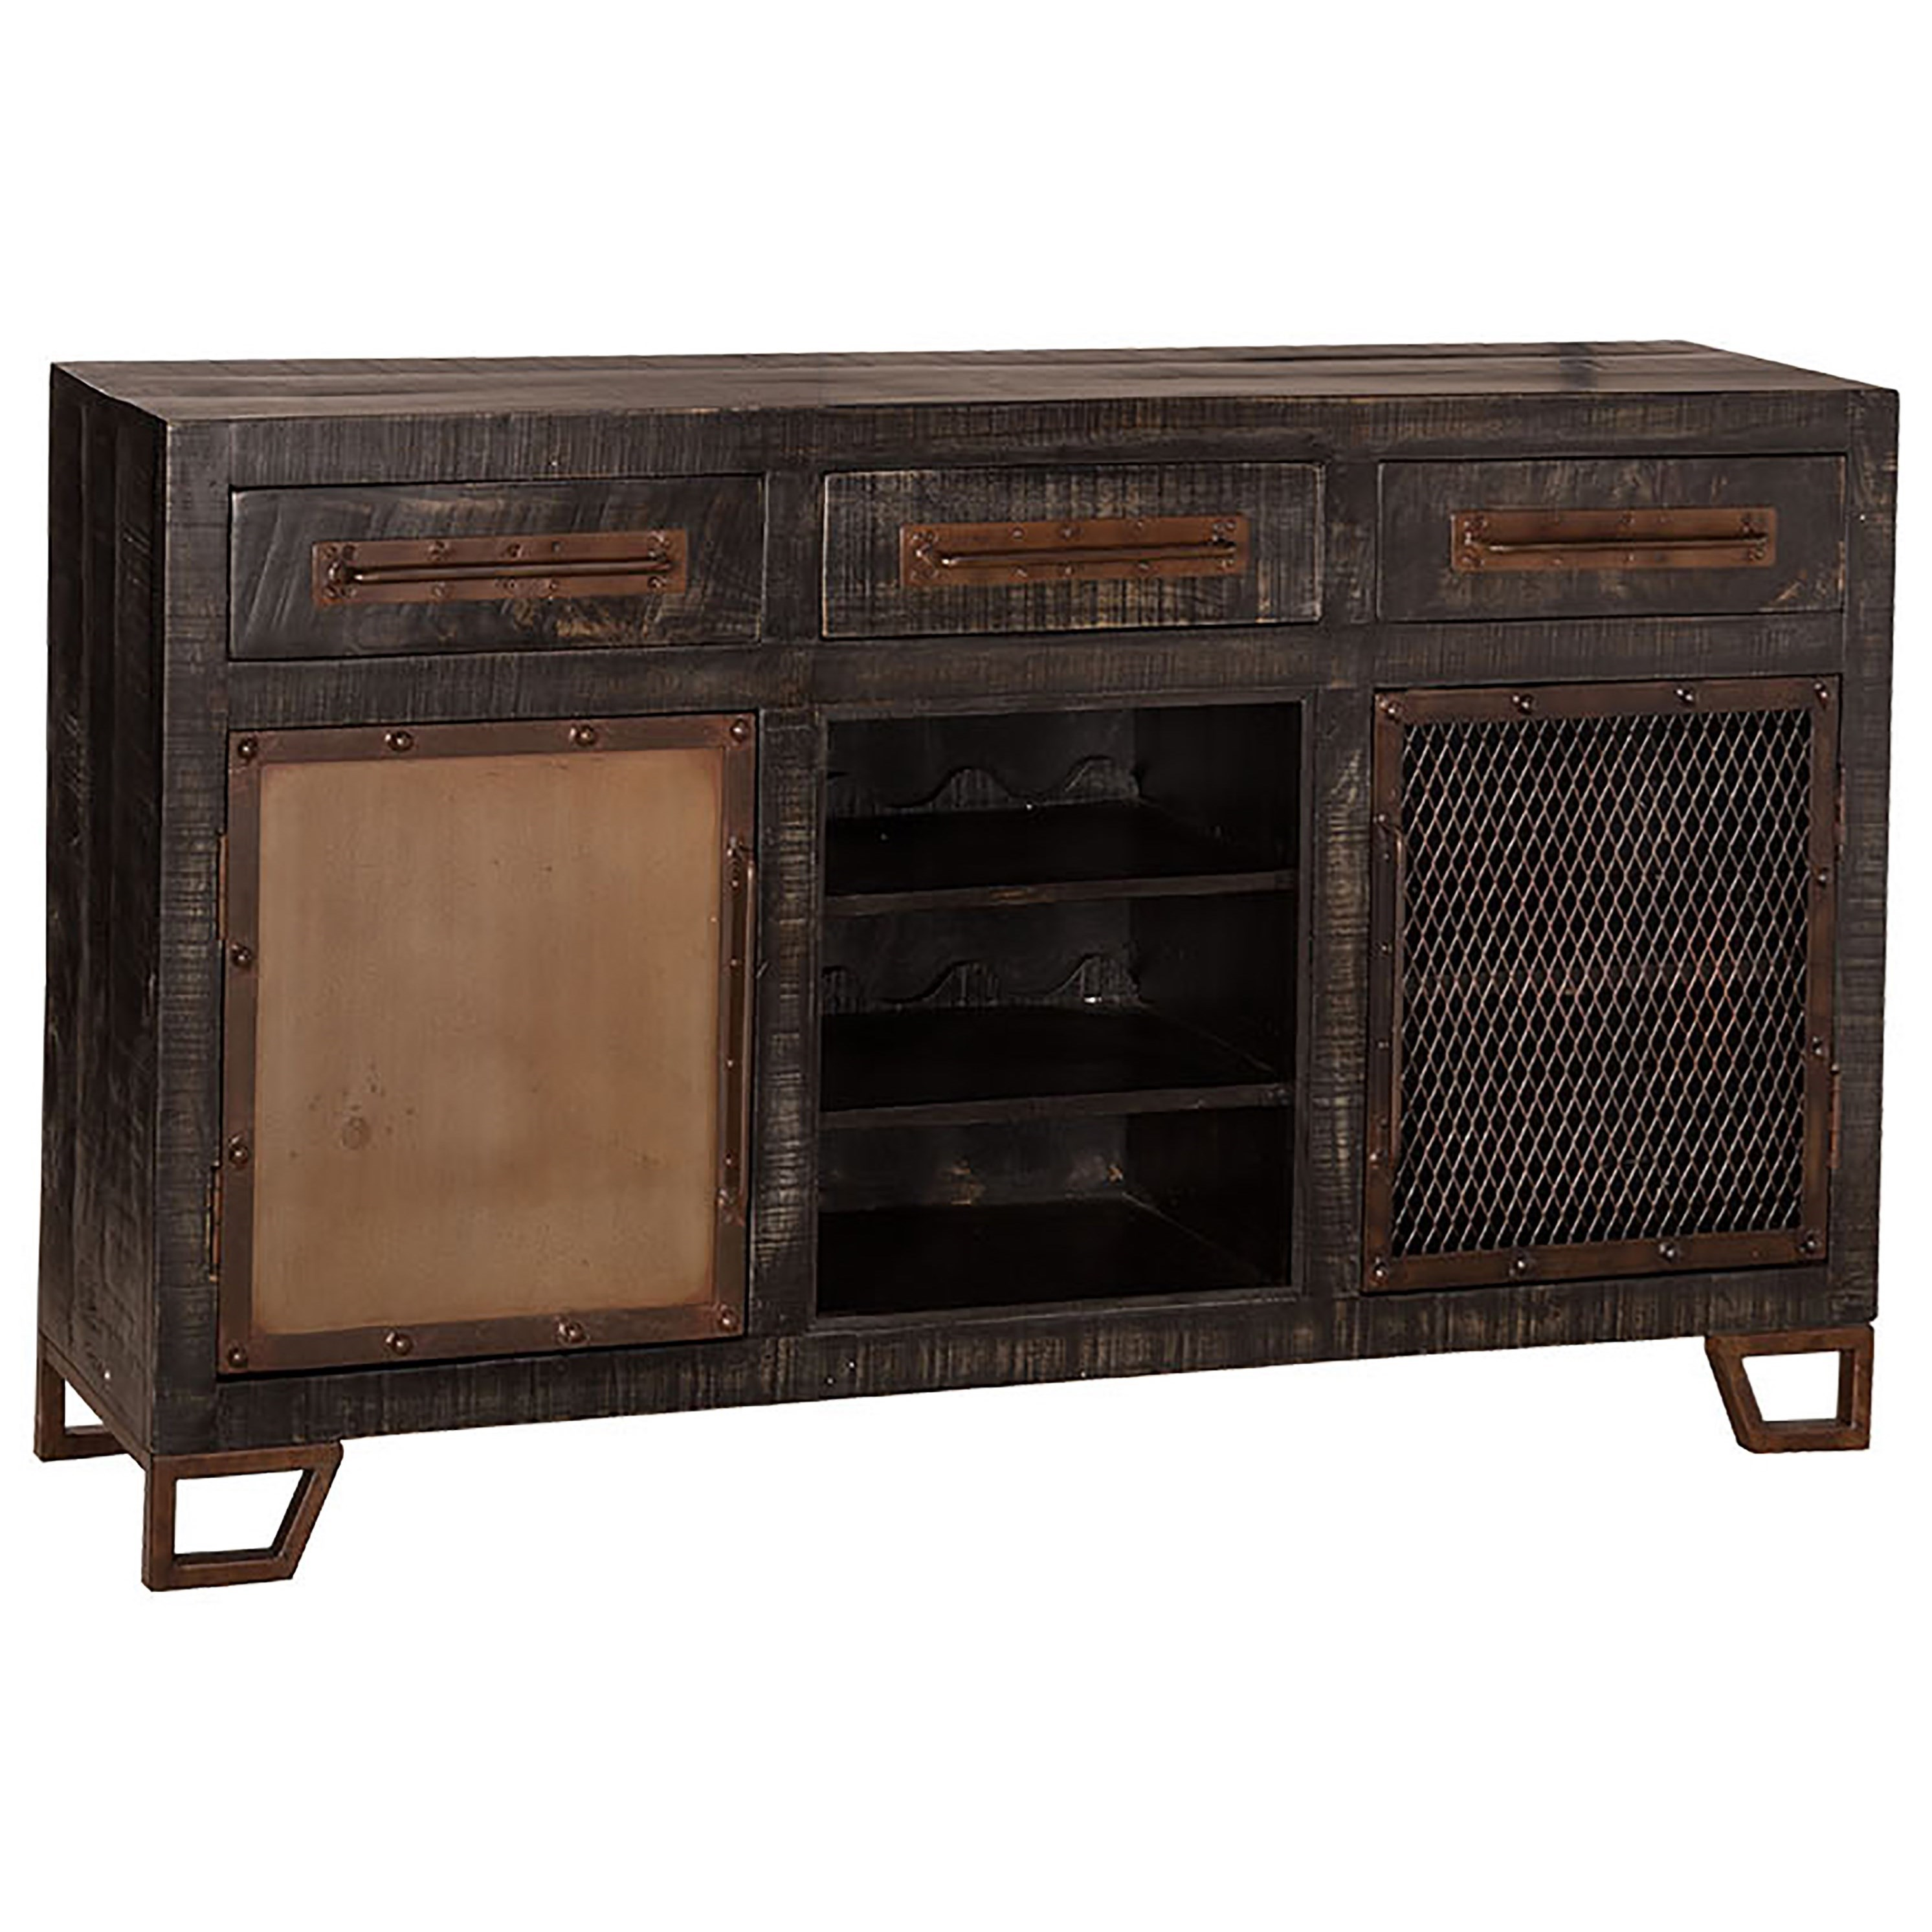 Rustic Sofa Table with Chicken Wire Doors and Wine Rack by